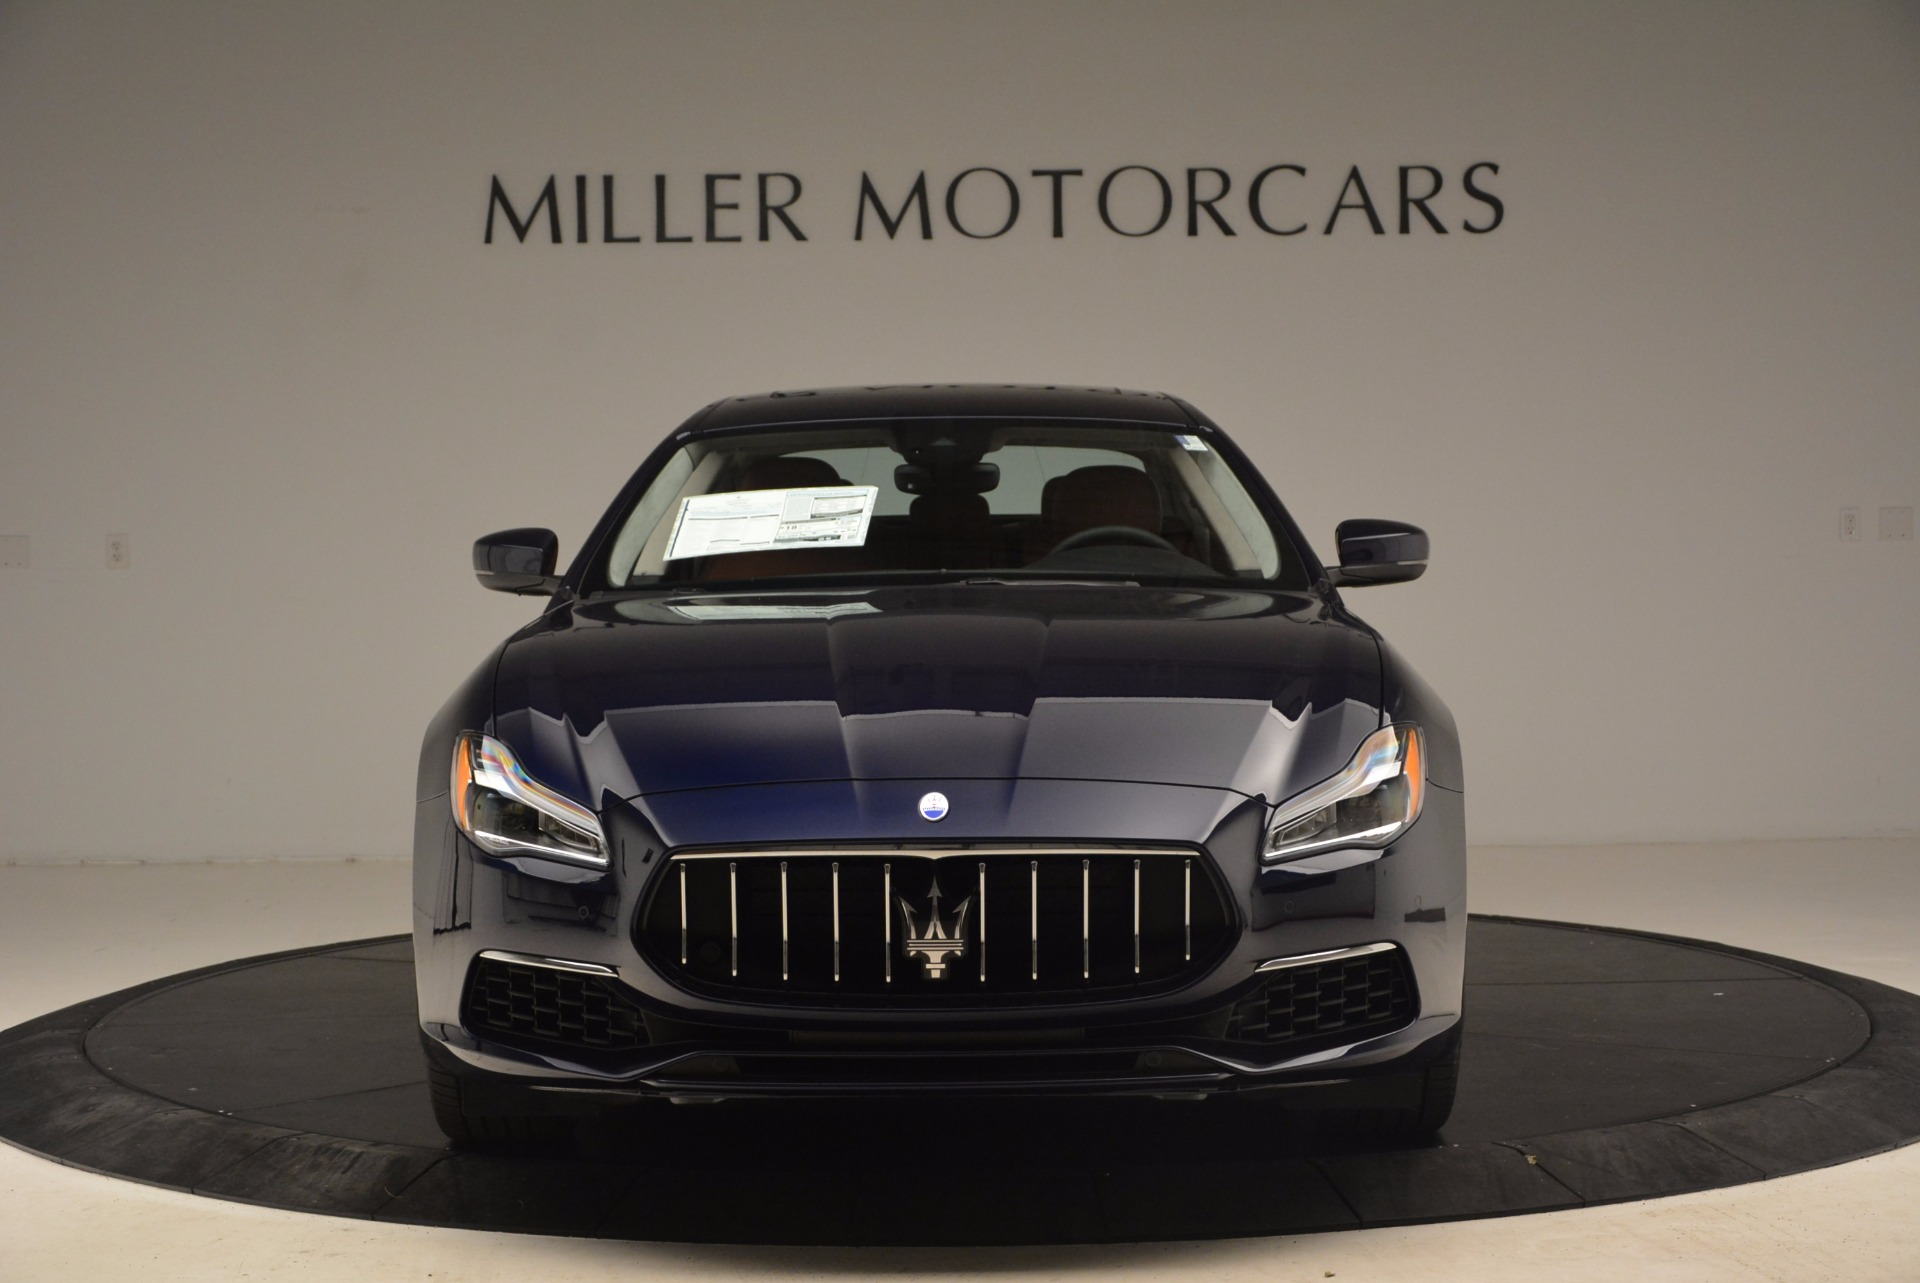 New 2018 Maserati Quattroporte S Q4 GranLusso For Sale In Greenwich, CT 1700_p12